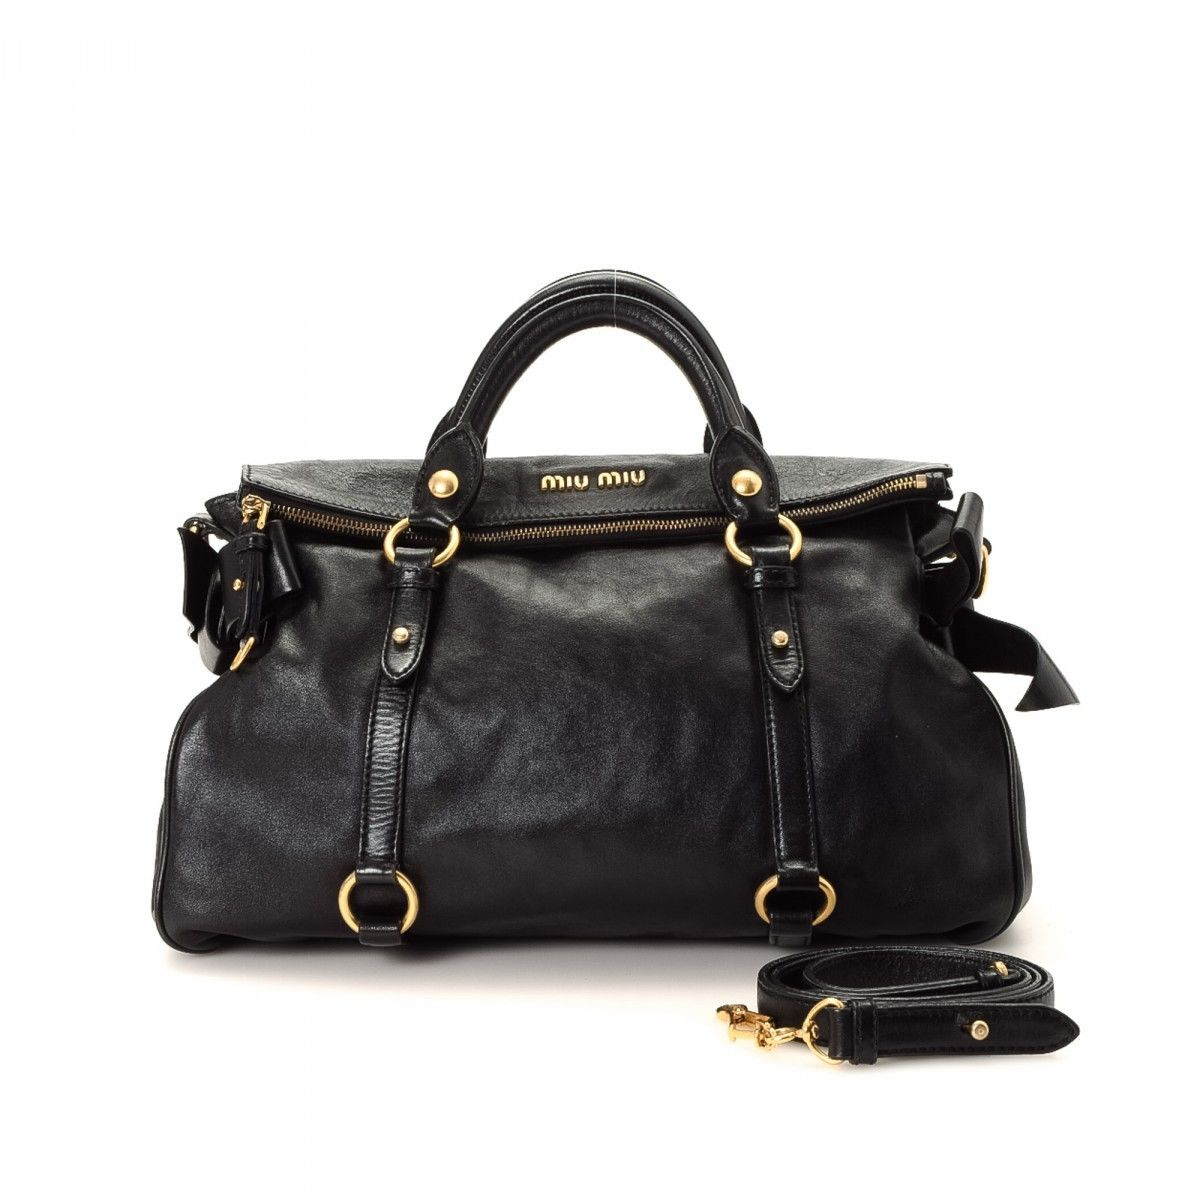 Miu Two Way Bow Bag Leather Lxrandco Pre Owned Luxury Vintage ed4a578aba5ea